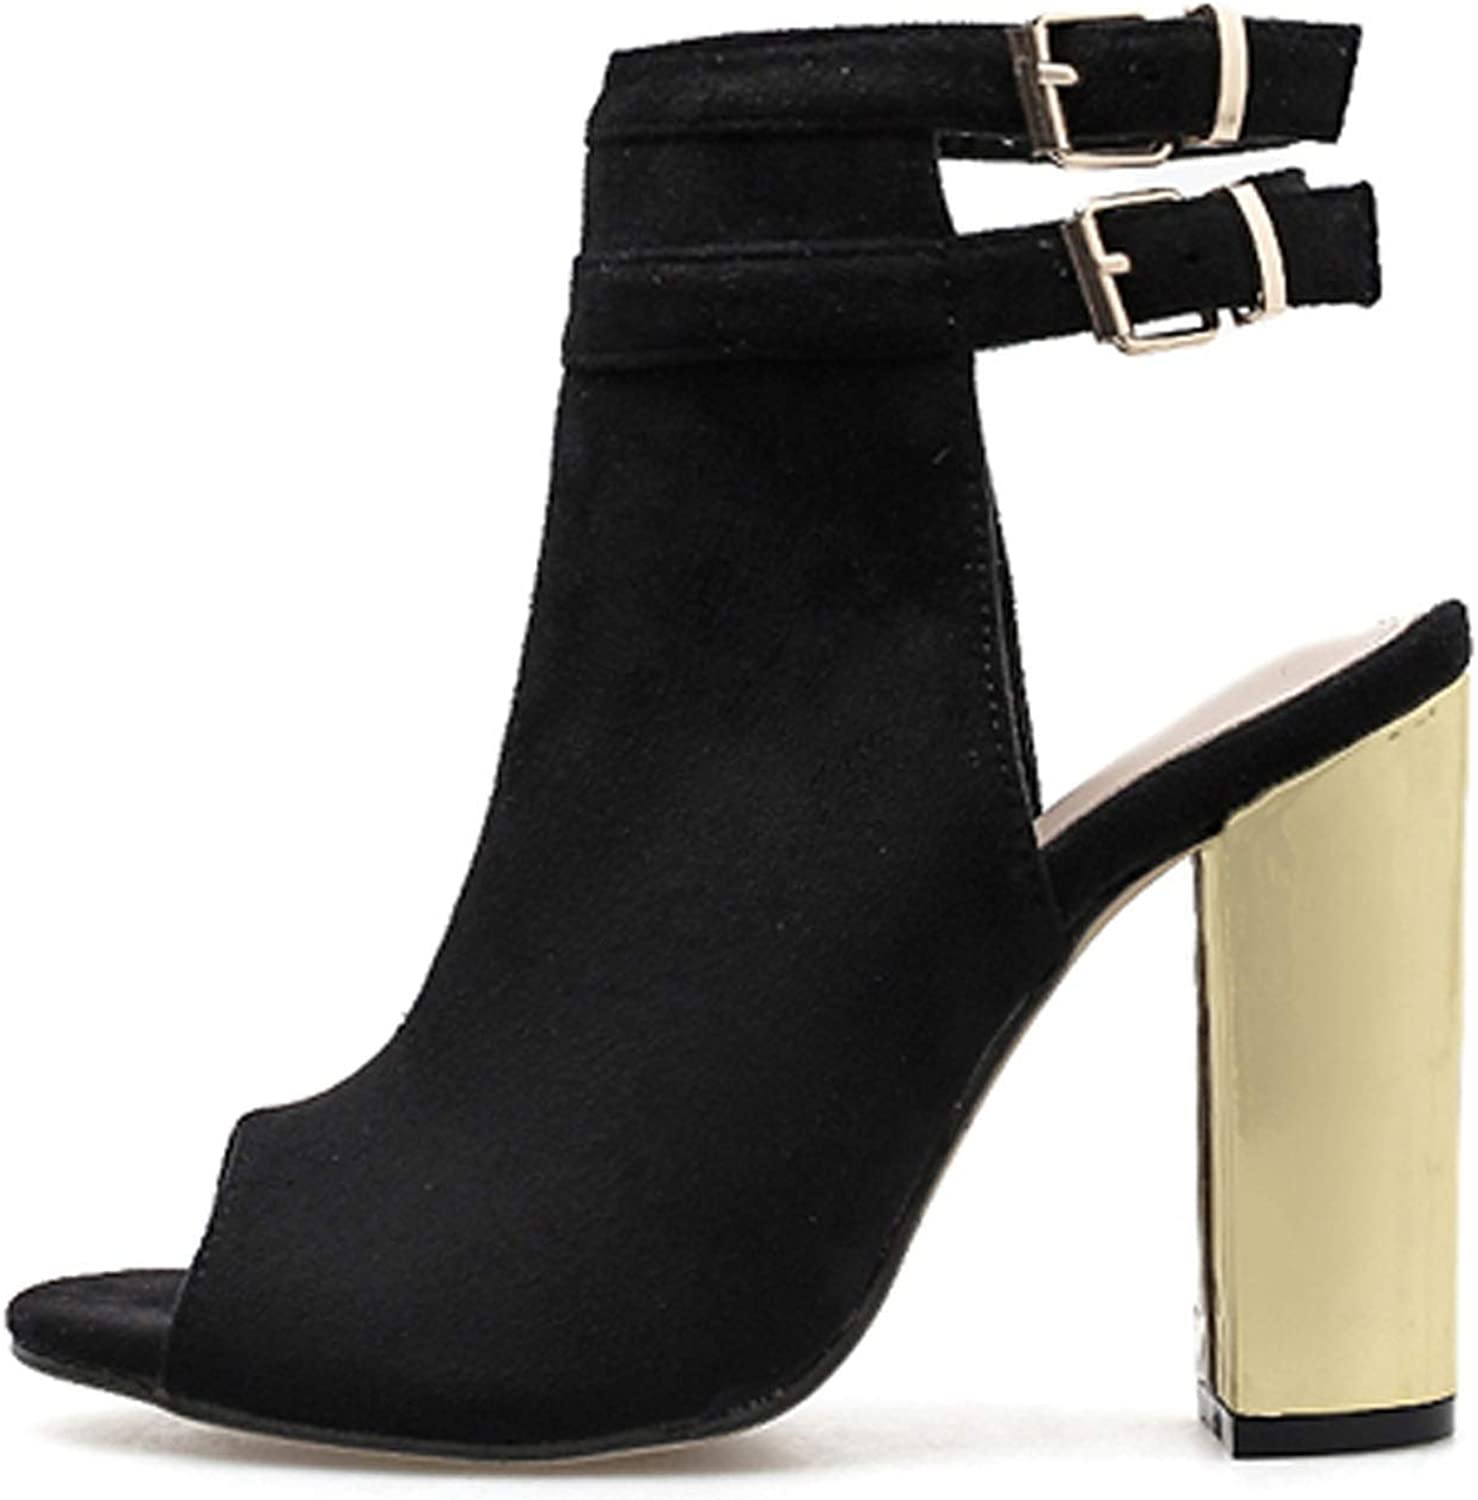 HuangKang 2019 New Female Sandals Open Toe Square Heel Sandals Black Sexy Ankle Straps High Heels Women shoes